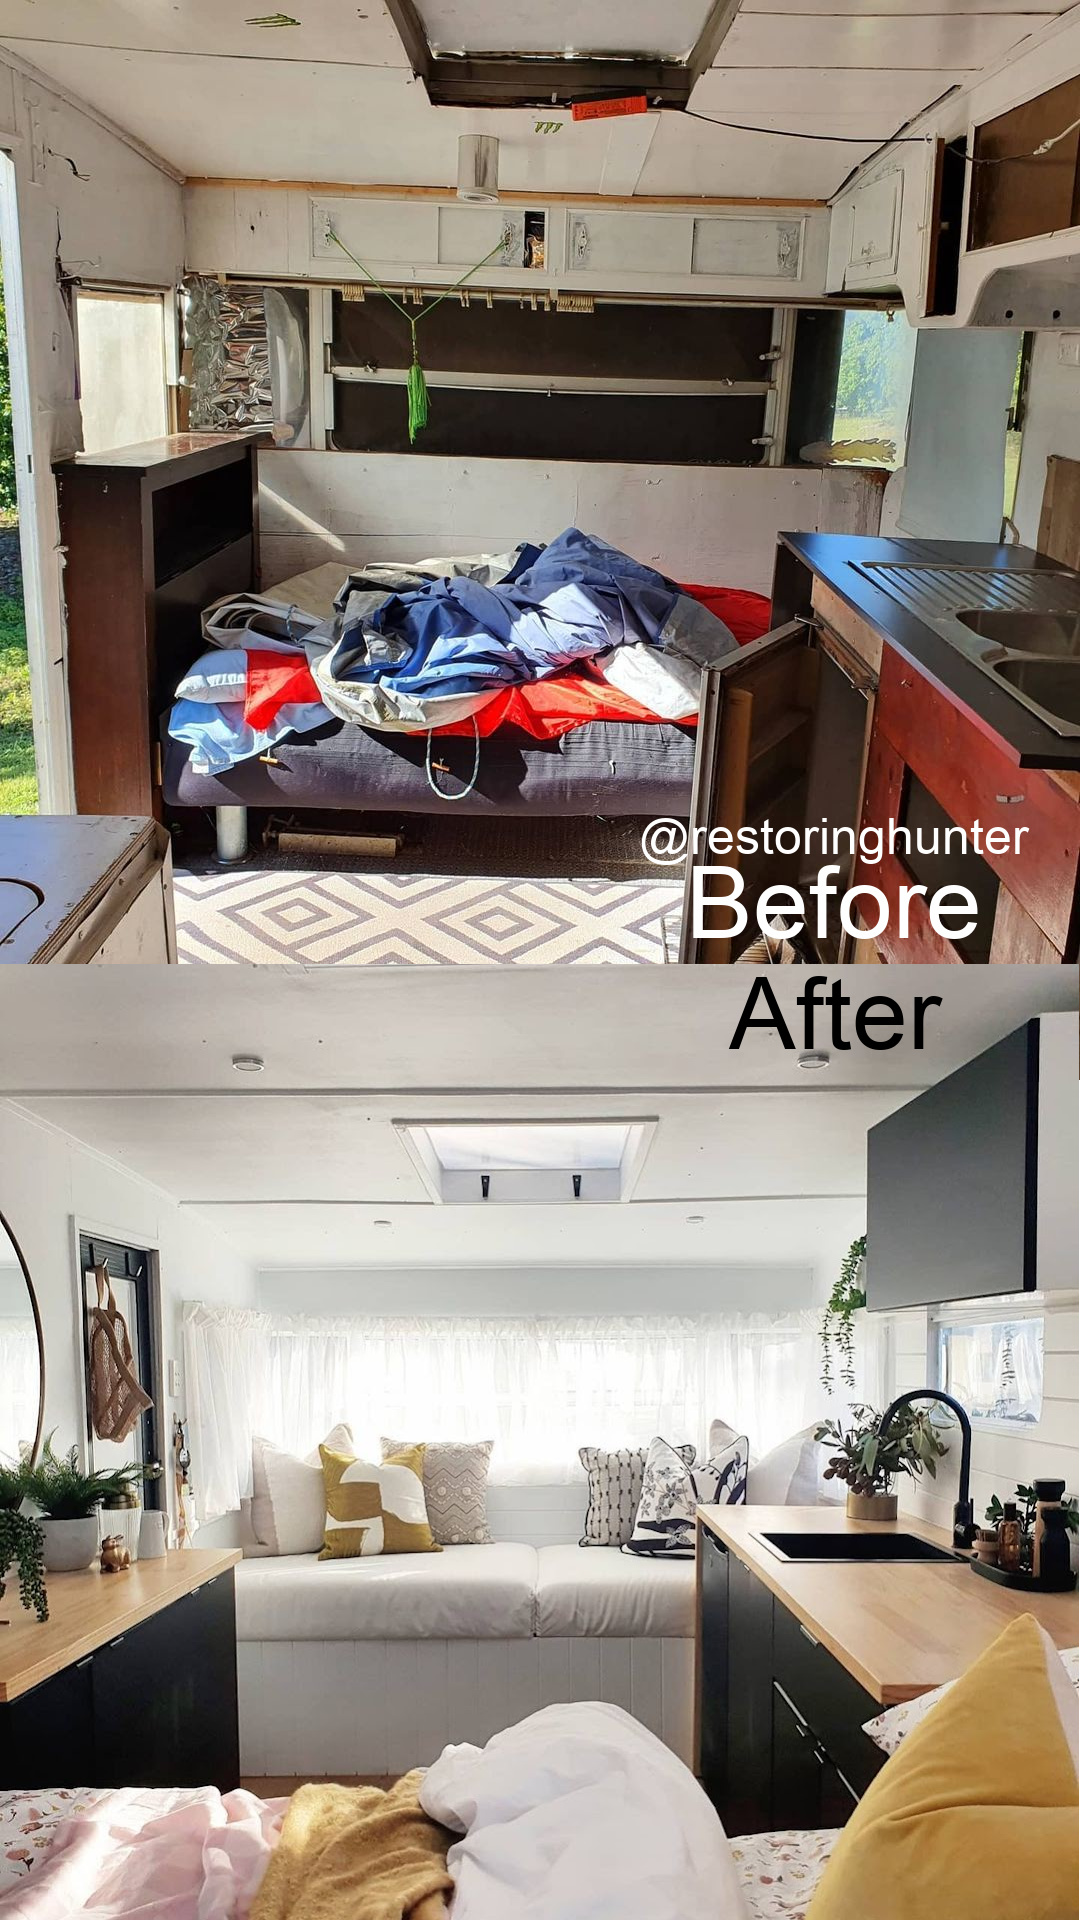 Before and after photos of the interior of a renovated vintage camper.